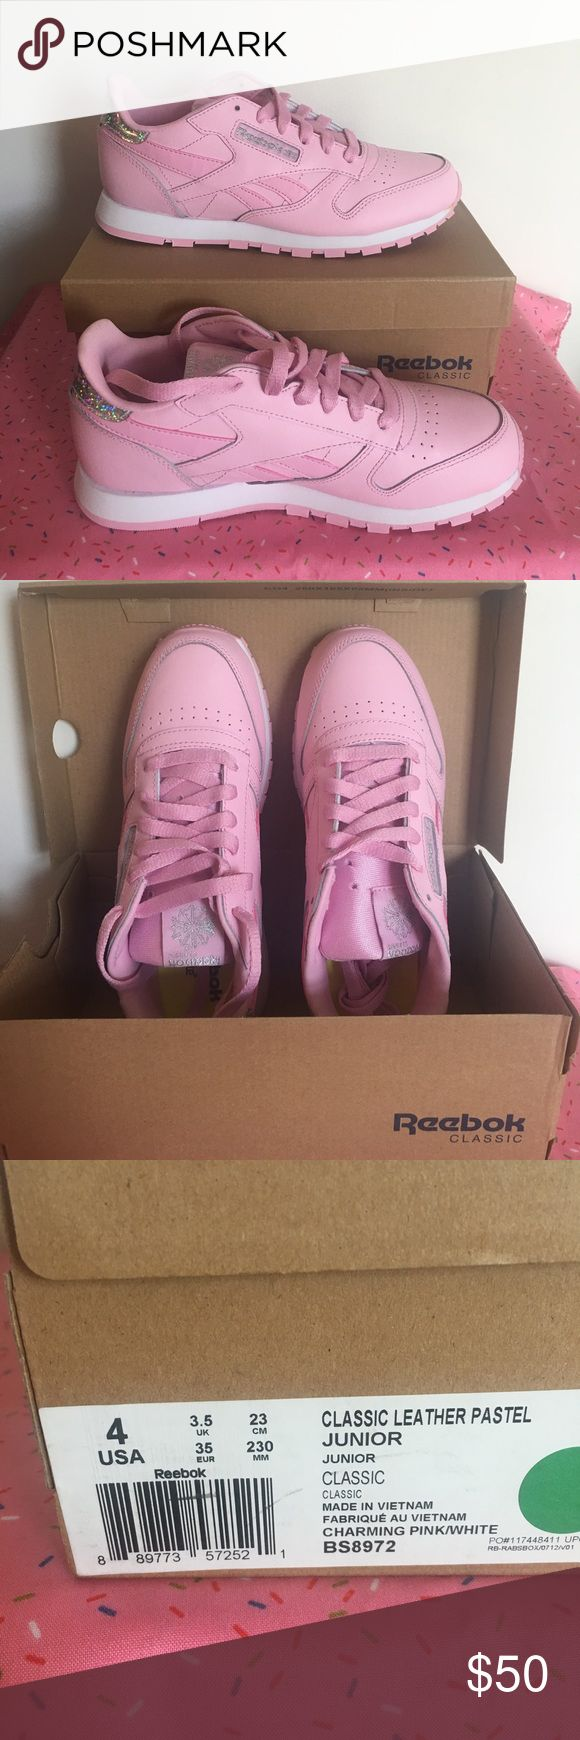 Reebok Classic Leather Pastels! Rebecca Classic Pink Leather Pastels, size 4 (brand new, with box). Reebok Shoes Athletic Shoes